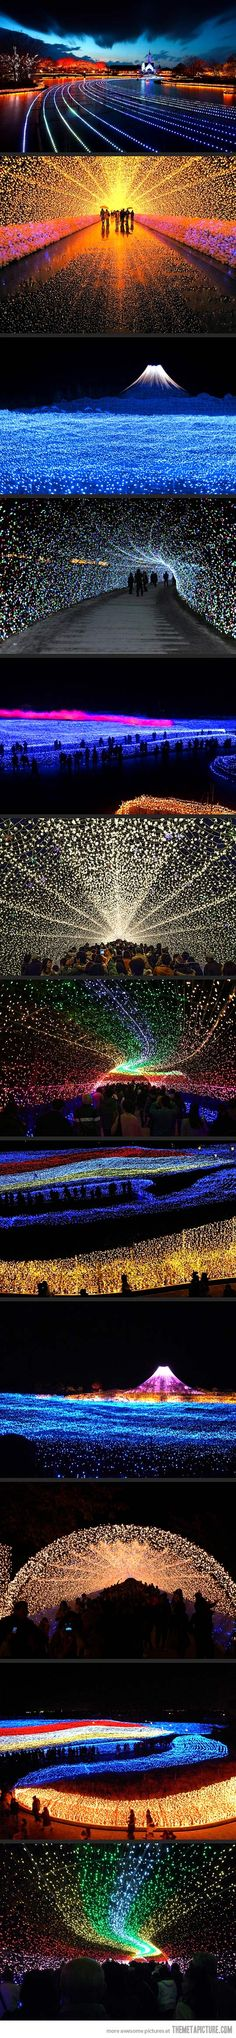 Japan's Winter Lights Festival #ravenectar #art #installation #modern #contemporary #design